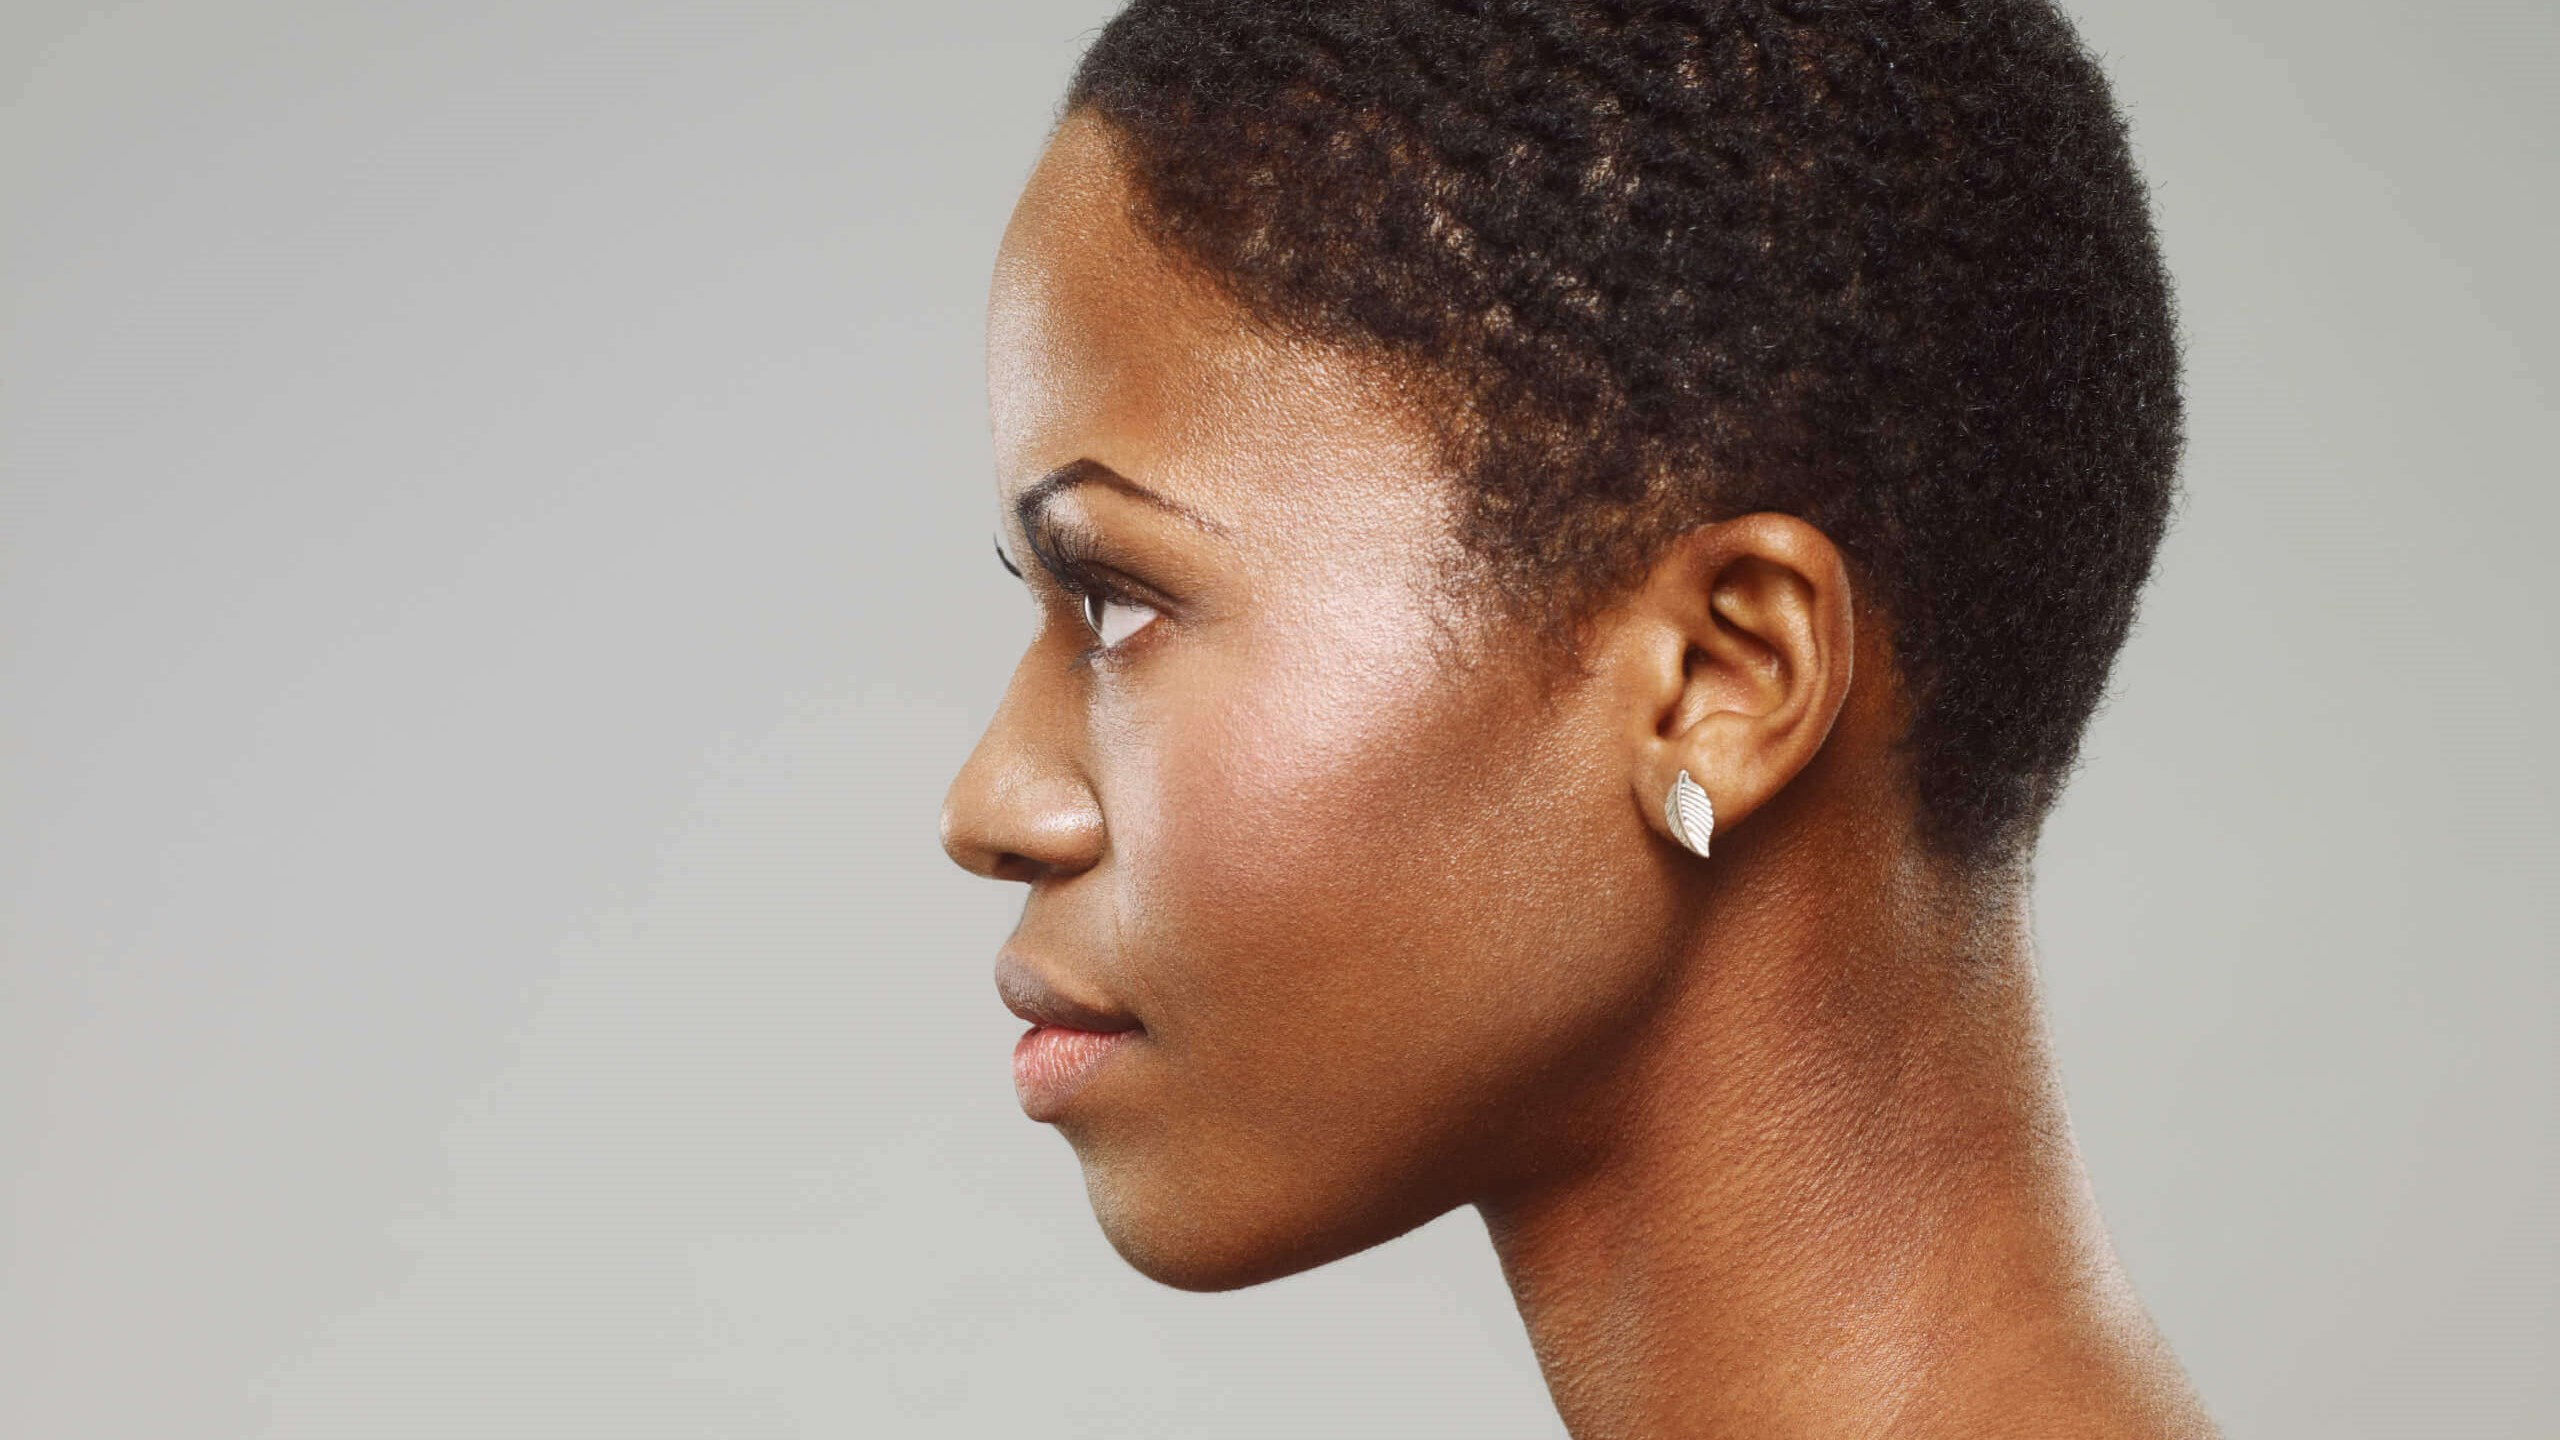 Rhinoplasty 101: The Basics Of Getting A Nose Job